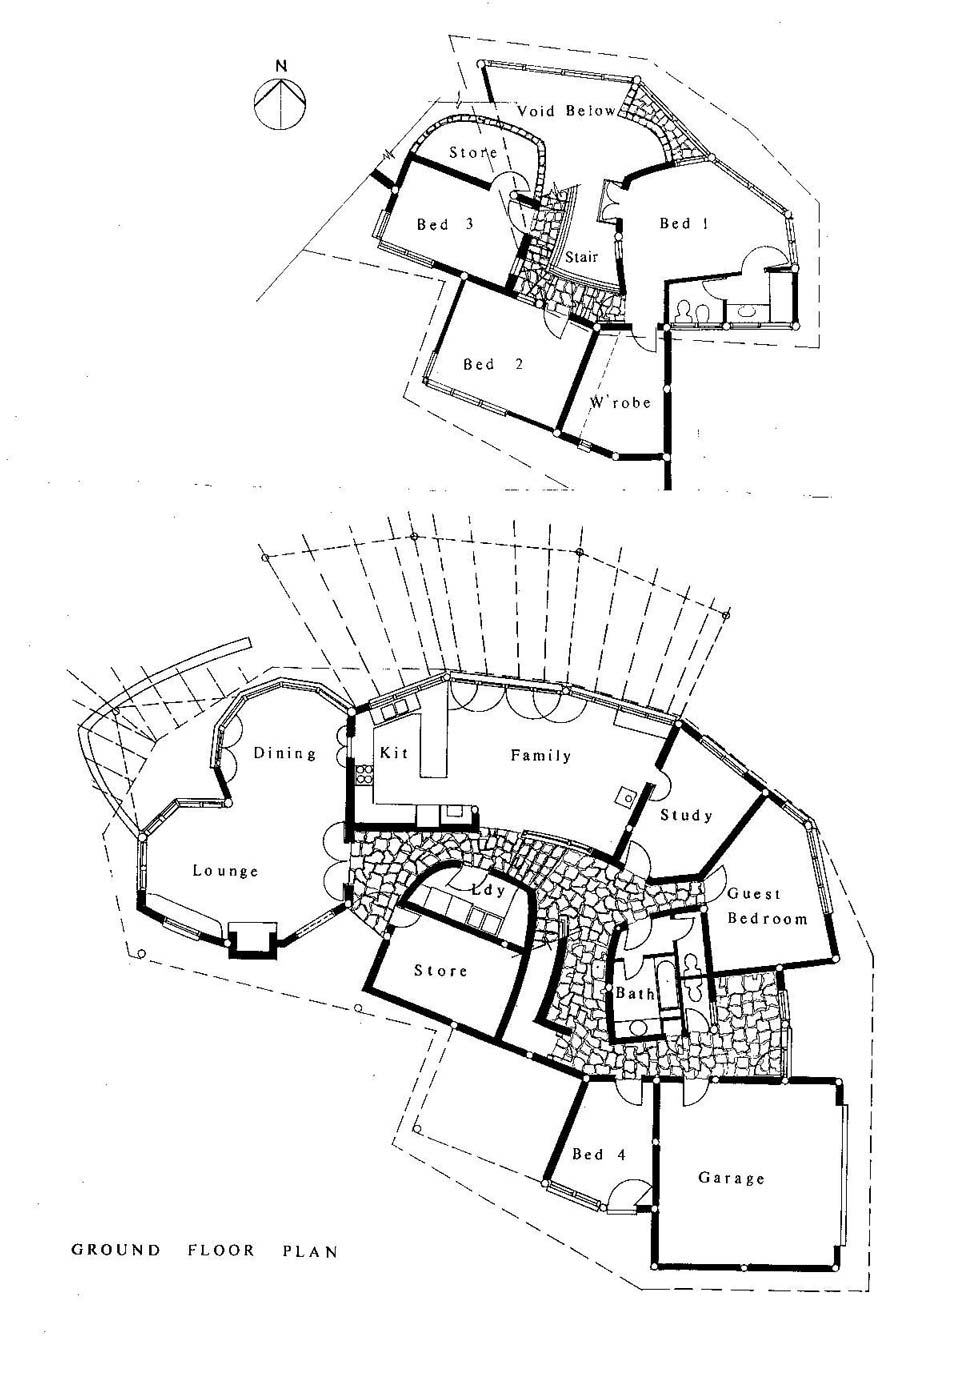 greek village house plan g and f.jpg